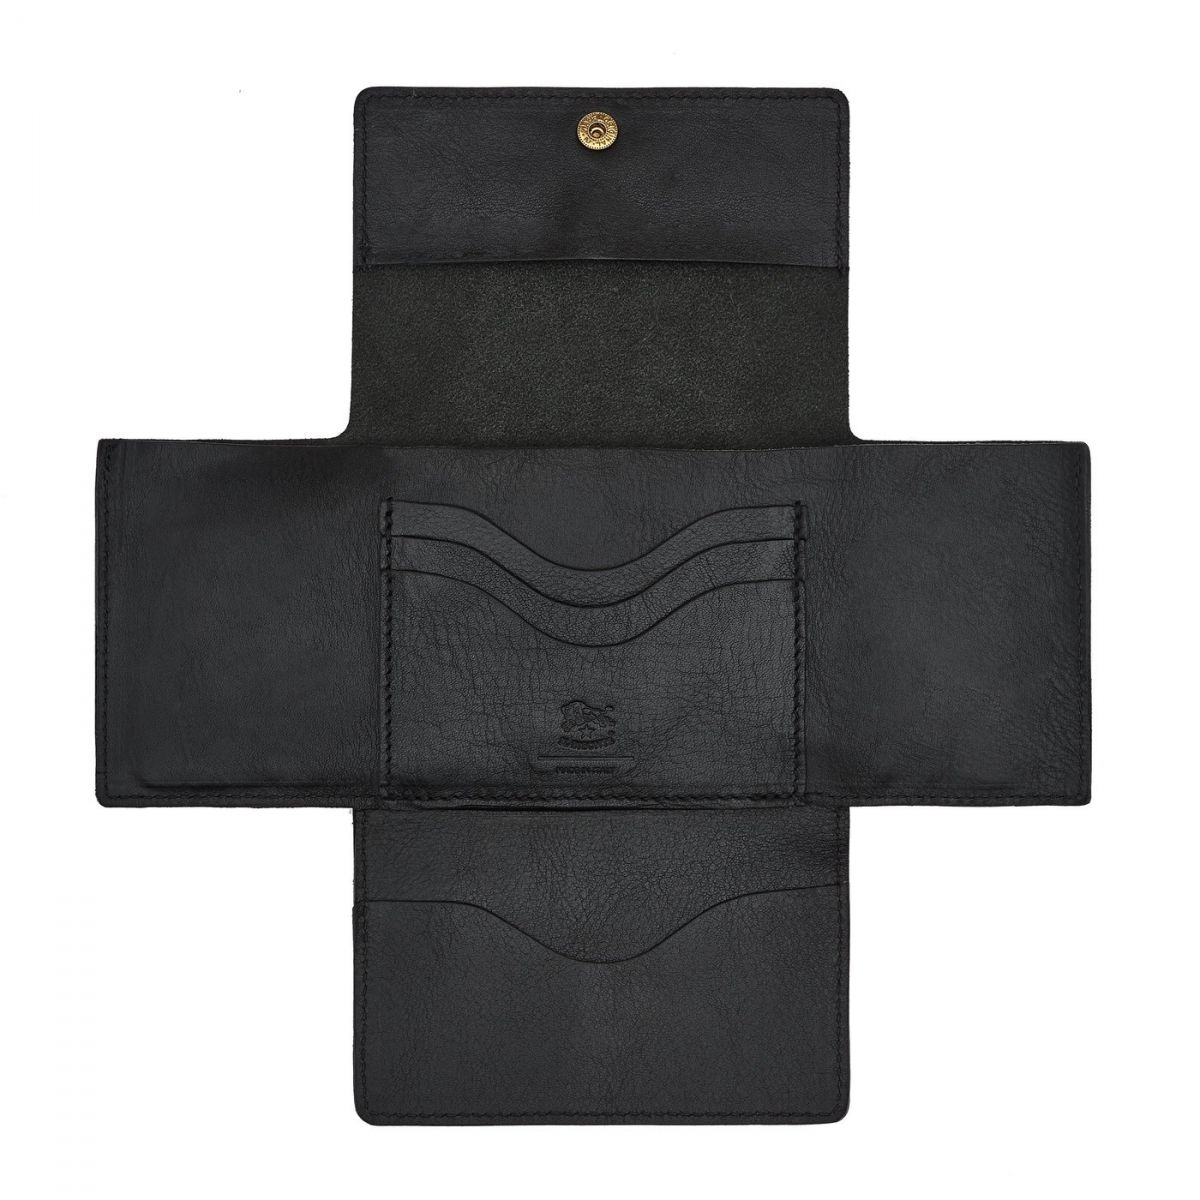 Women's Wallet  in Cowhide Leather SMW107 color Black | Details